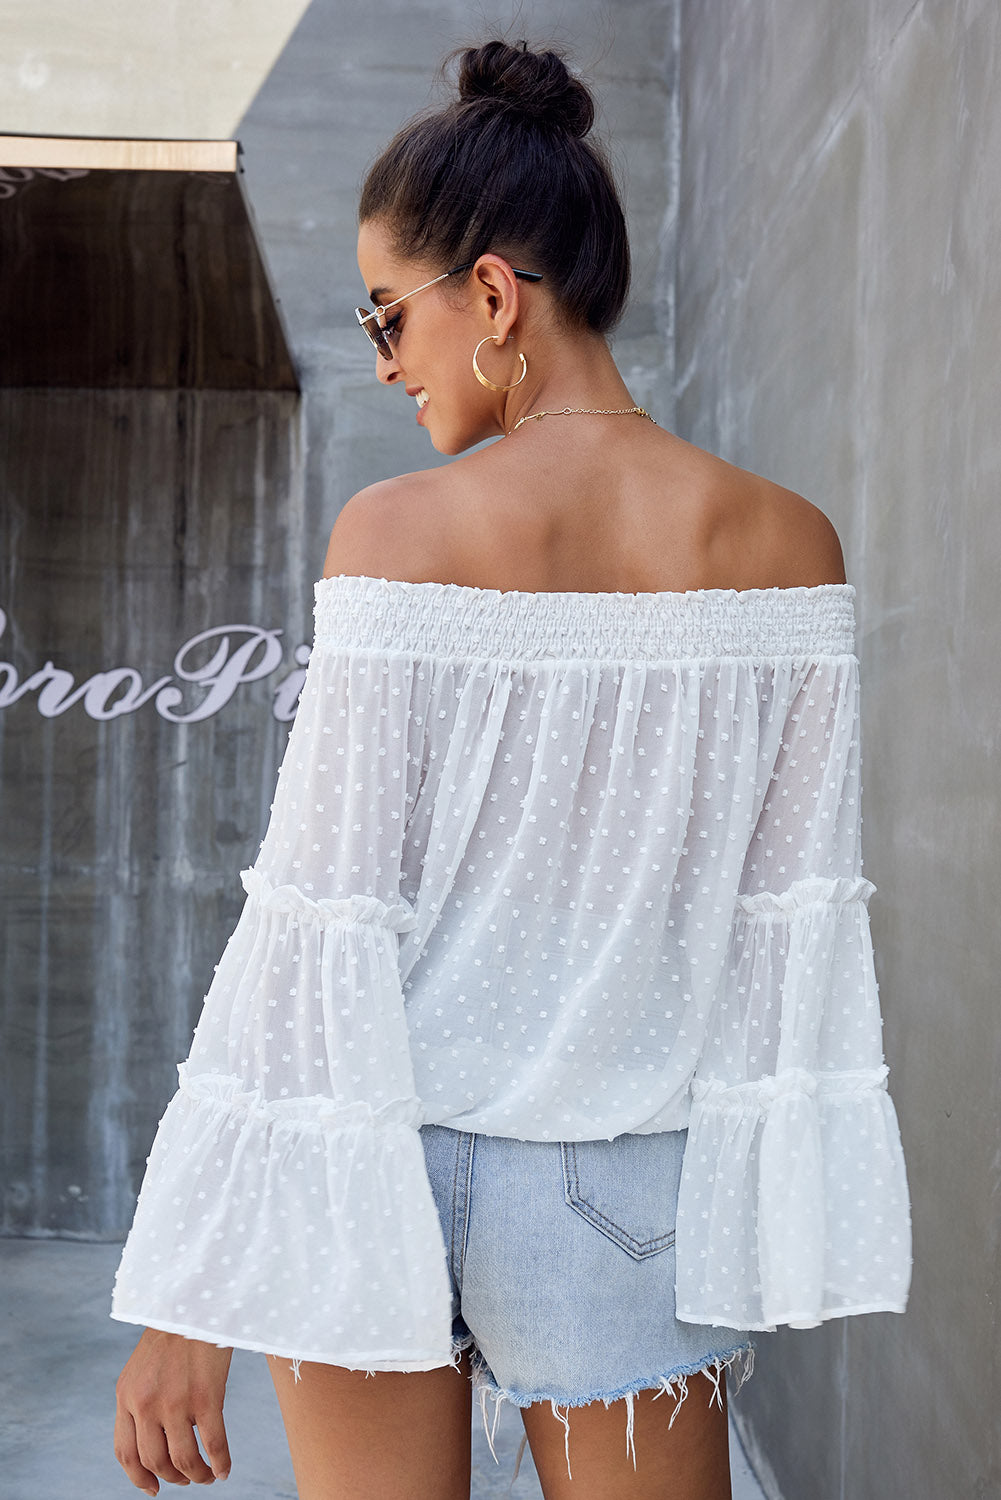 White Swiss Dot Off The Shoulder Top Long Sleeve Tops Discount Designer Fashion Clothes Shoes Bags Women Men Kids Children Black Owned Business